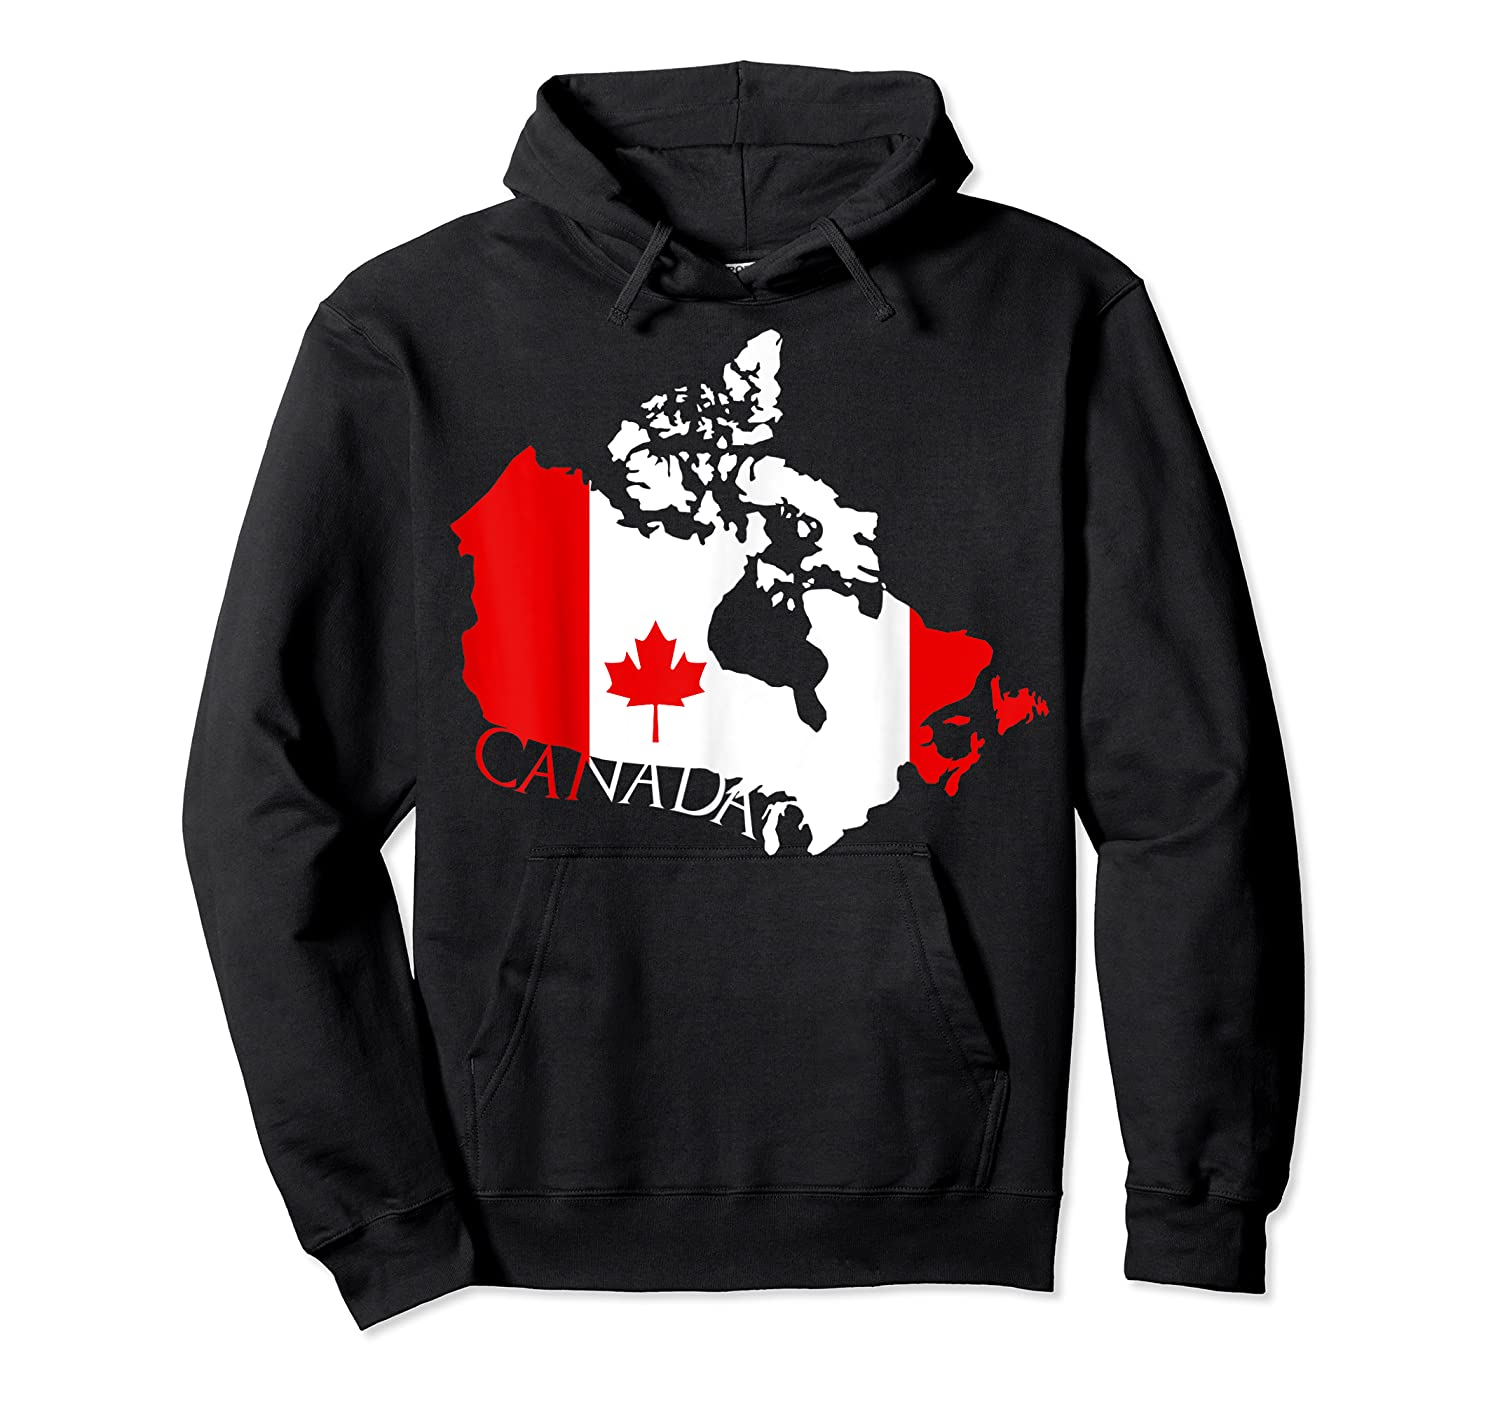 Proud Canada Flag Map T-shirts Maple Leaf Shirt Canada Day T-shirt Unisex Pullover Hoodie